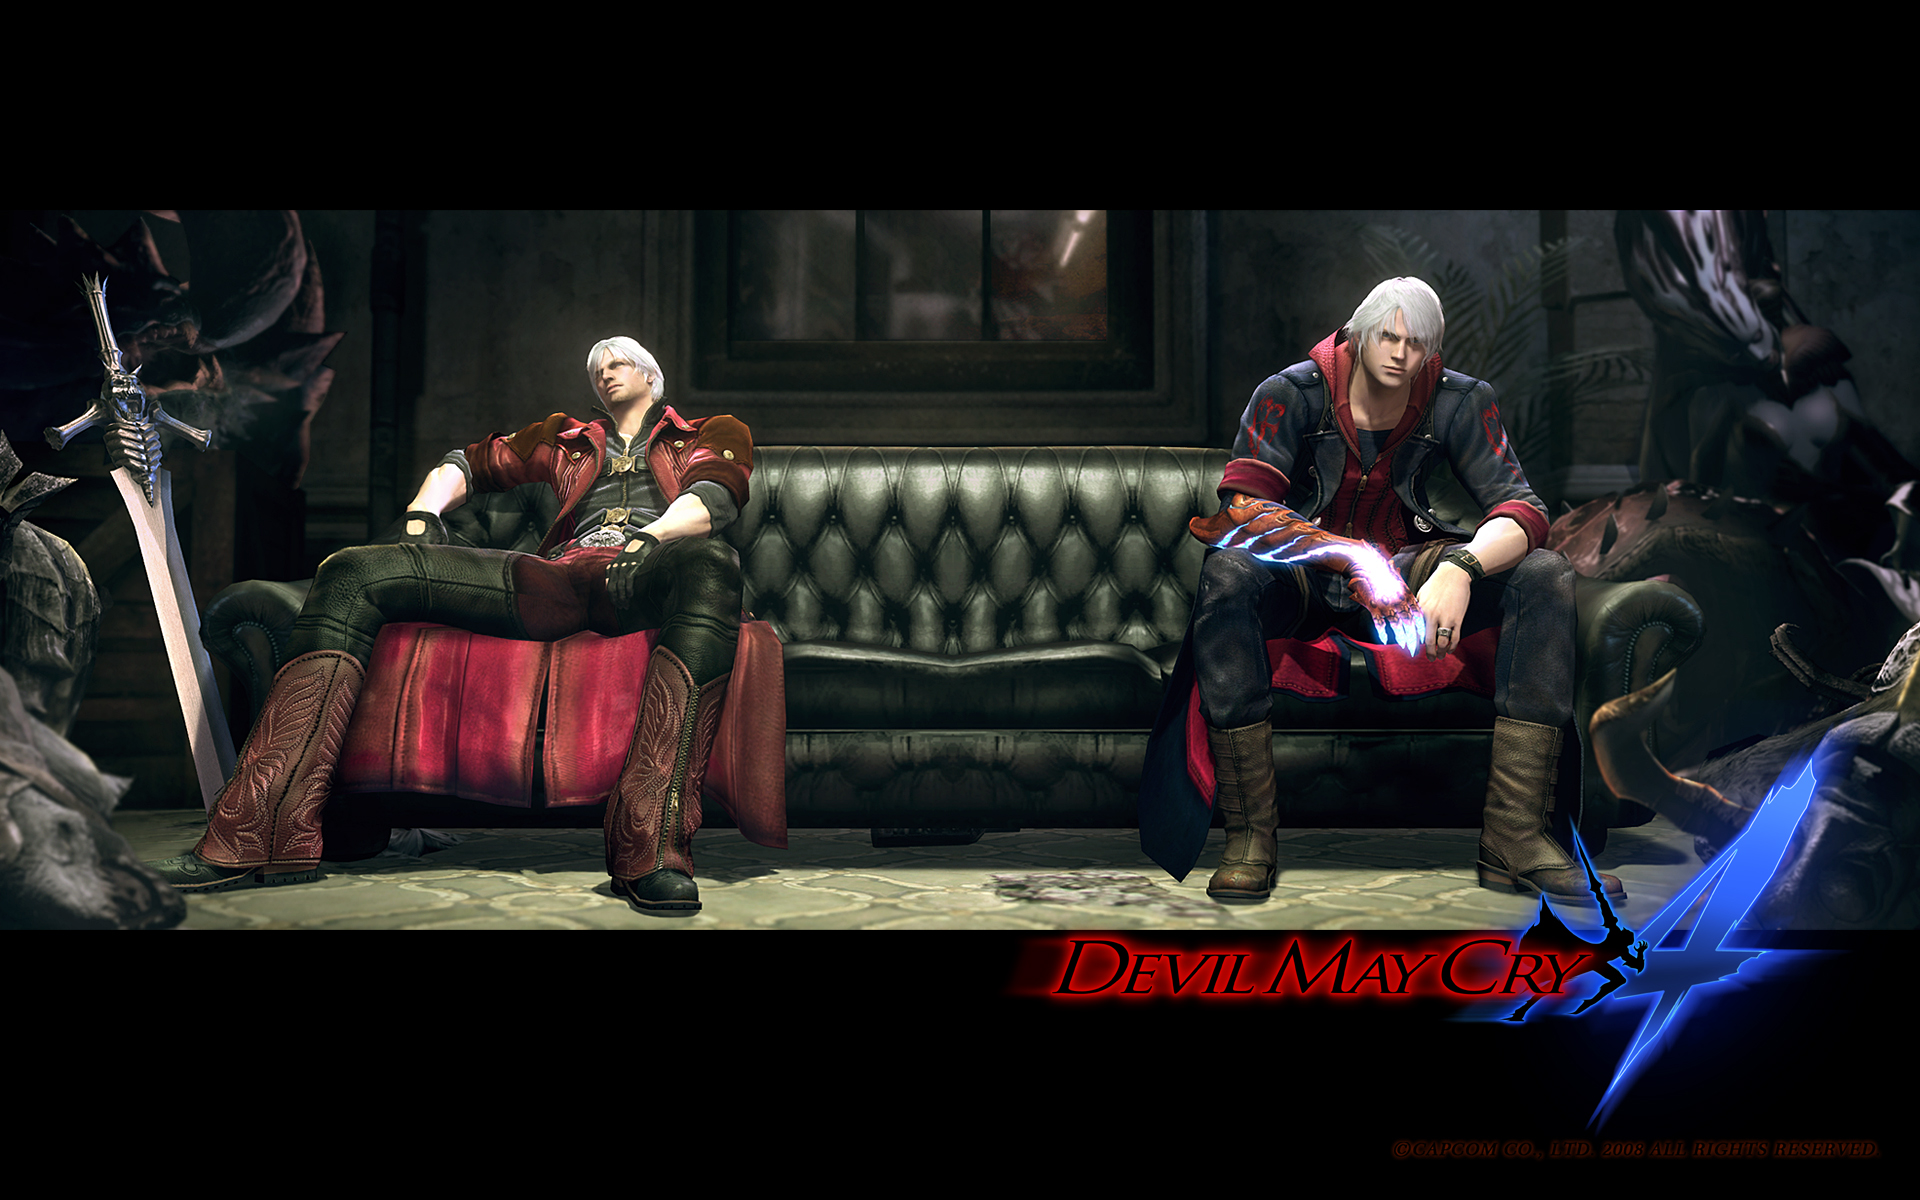 Devil May Cry 4 Dante and Nero Wallpaper | Customity